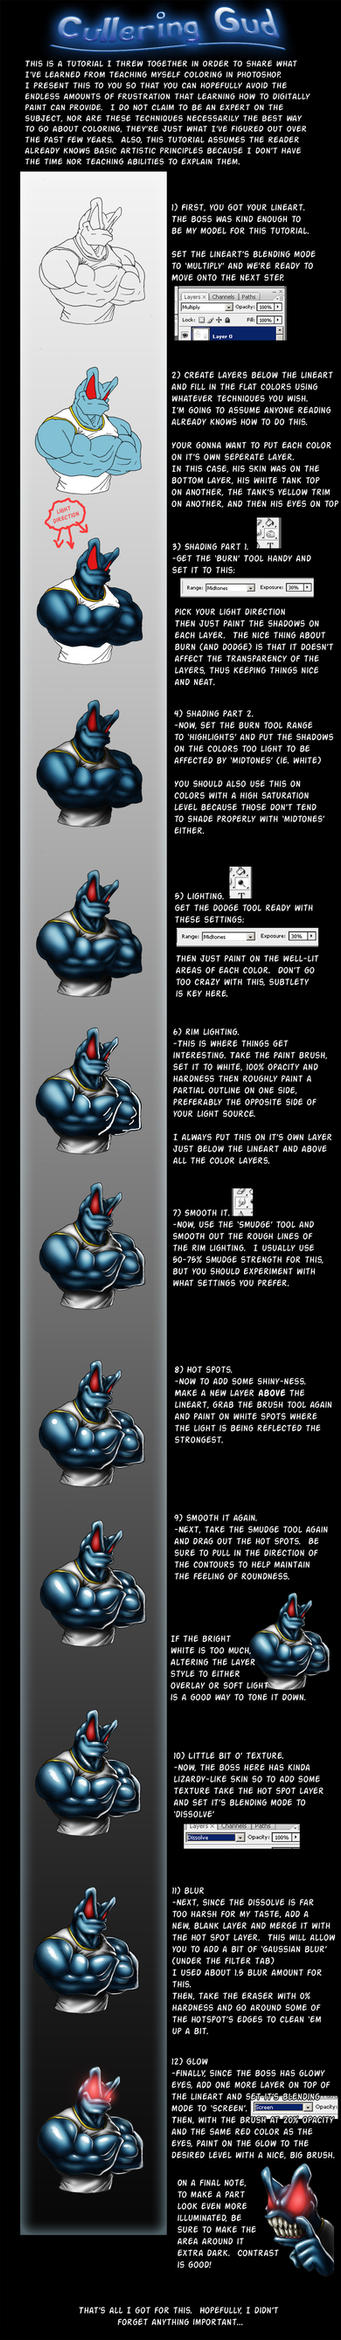 A 'Real' Coloring Tutorial by Marauder6272